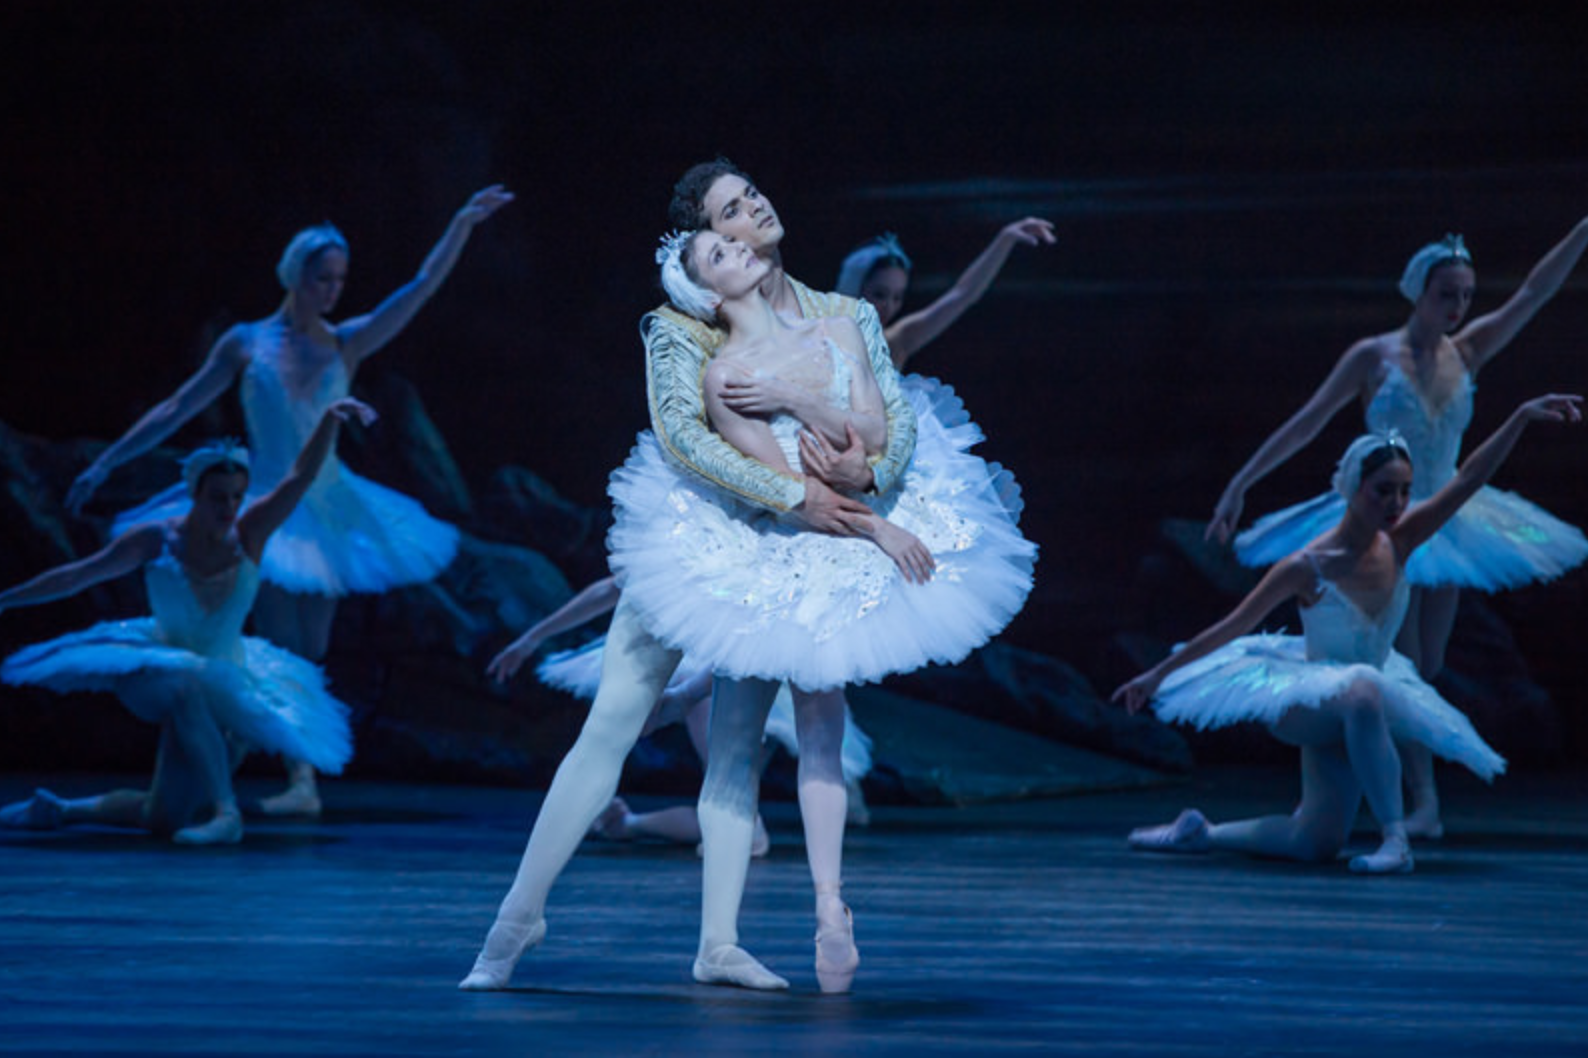 Alina Cojocaru as Odette/Odile and Alejandro Virelles as Prince Siegfried in English National Ballet's production of Swan Lake. Photo: © Photography by ASH